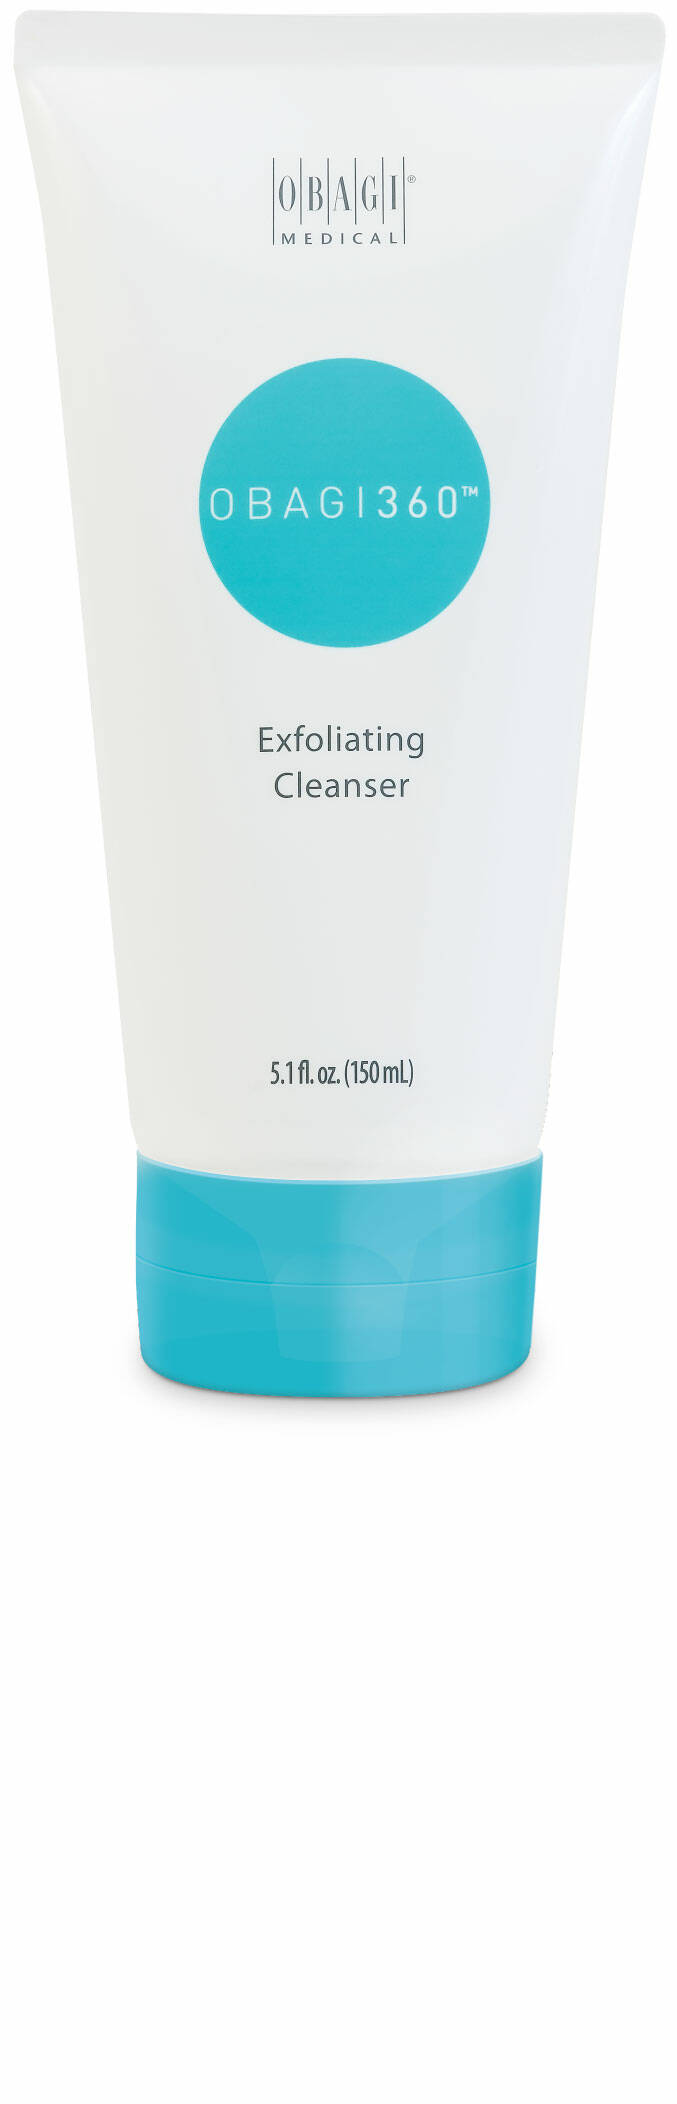 OBAGI MEDICAL EXFOLIATING CLEANSER 150ML